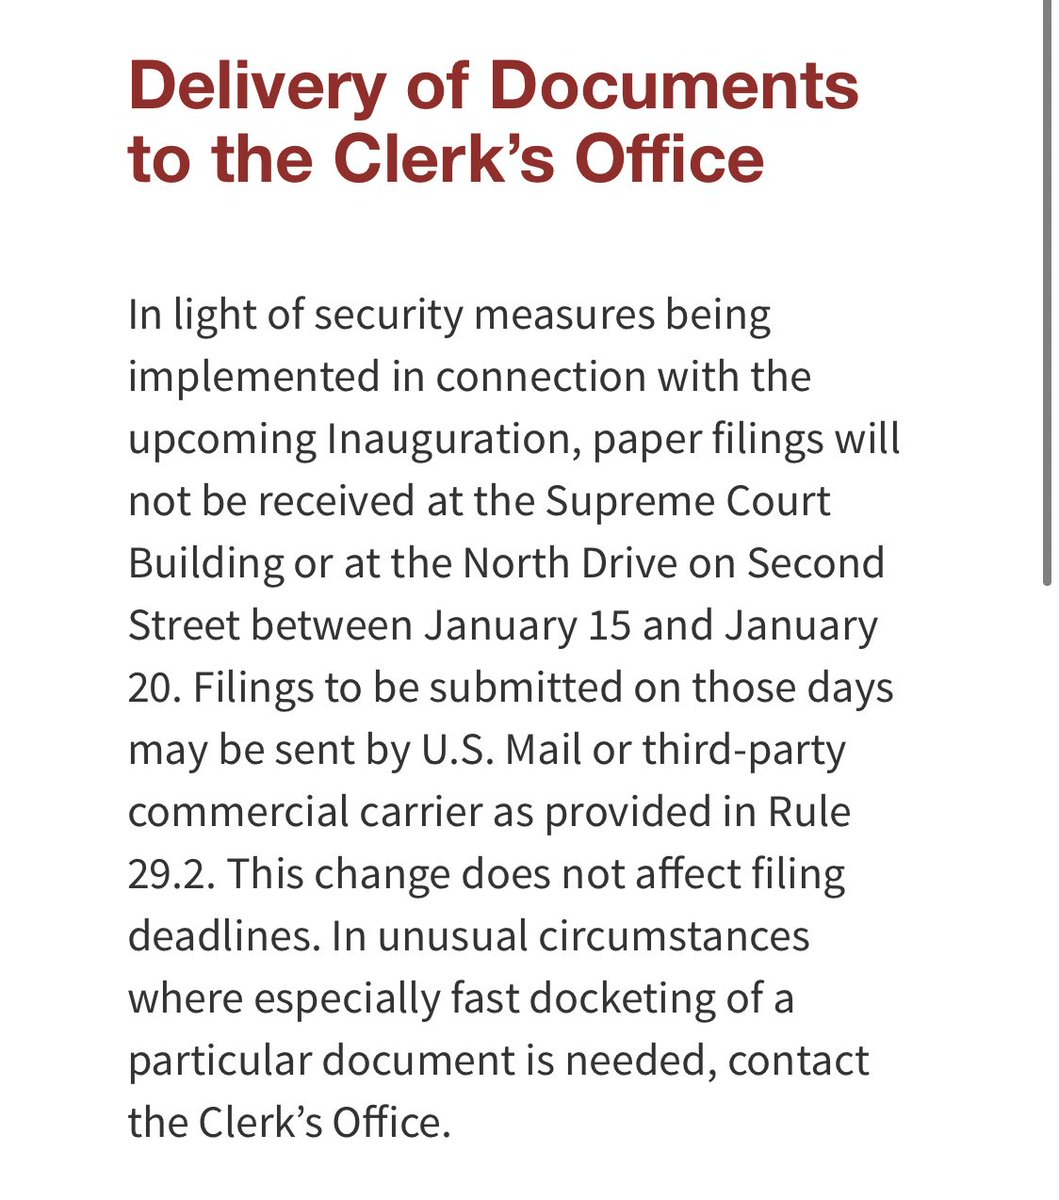 Brief security-related update from the Supreme Court. No paper filings through Inauguration Day.